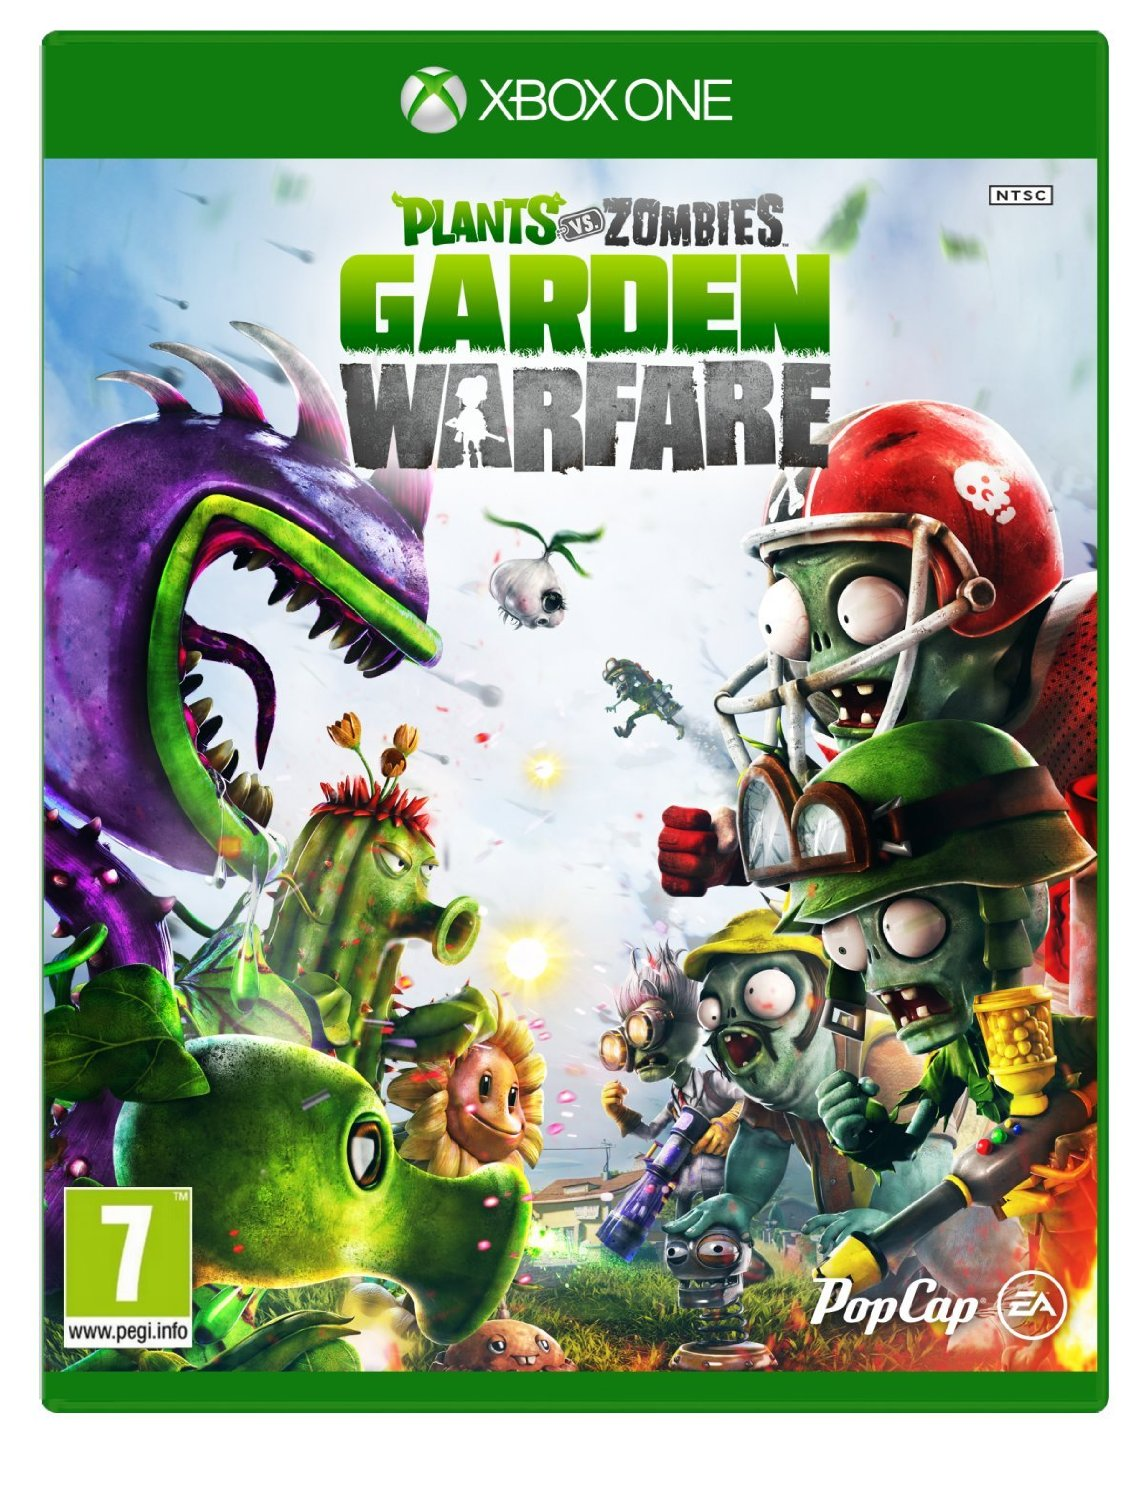 Plants vs zombies garden warfare xbox one review - Plants vs zombies garden warfare xbox one ...